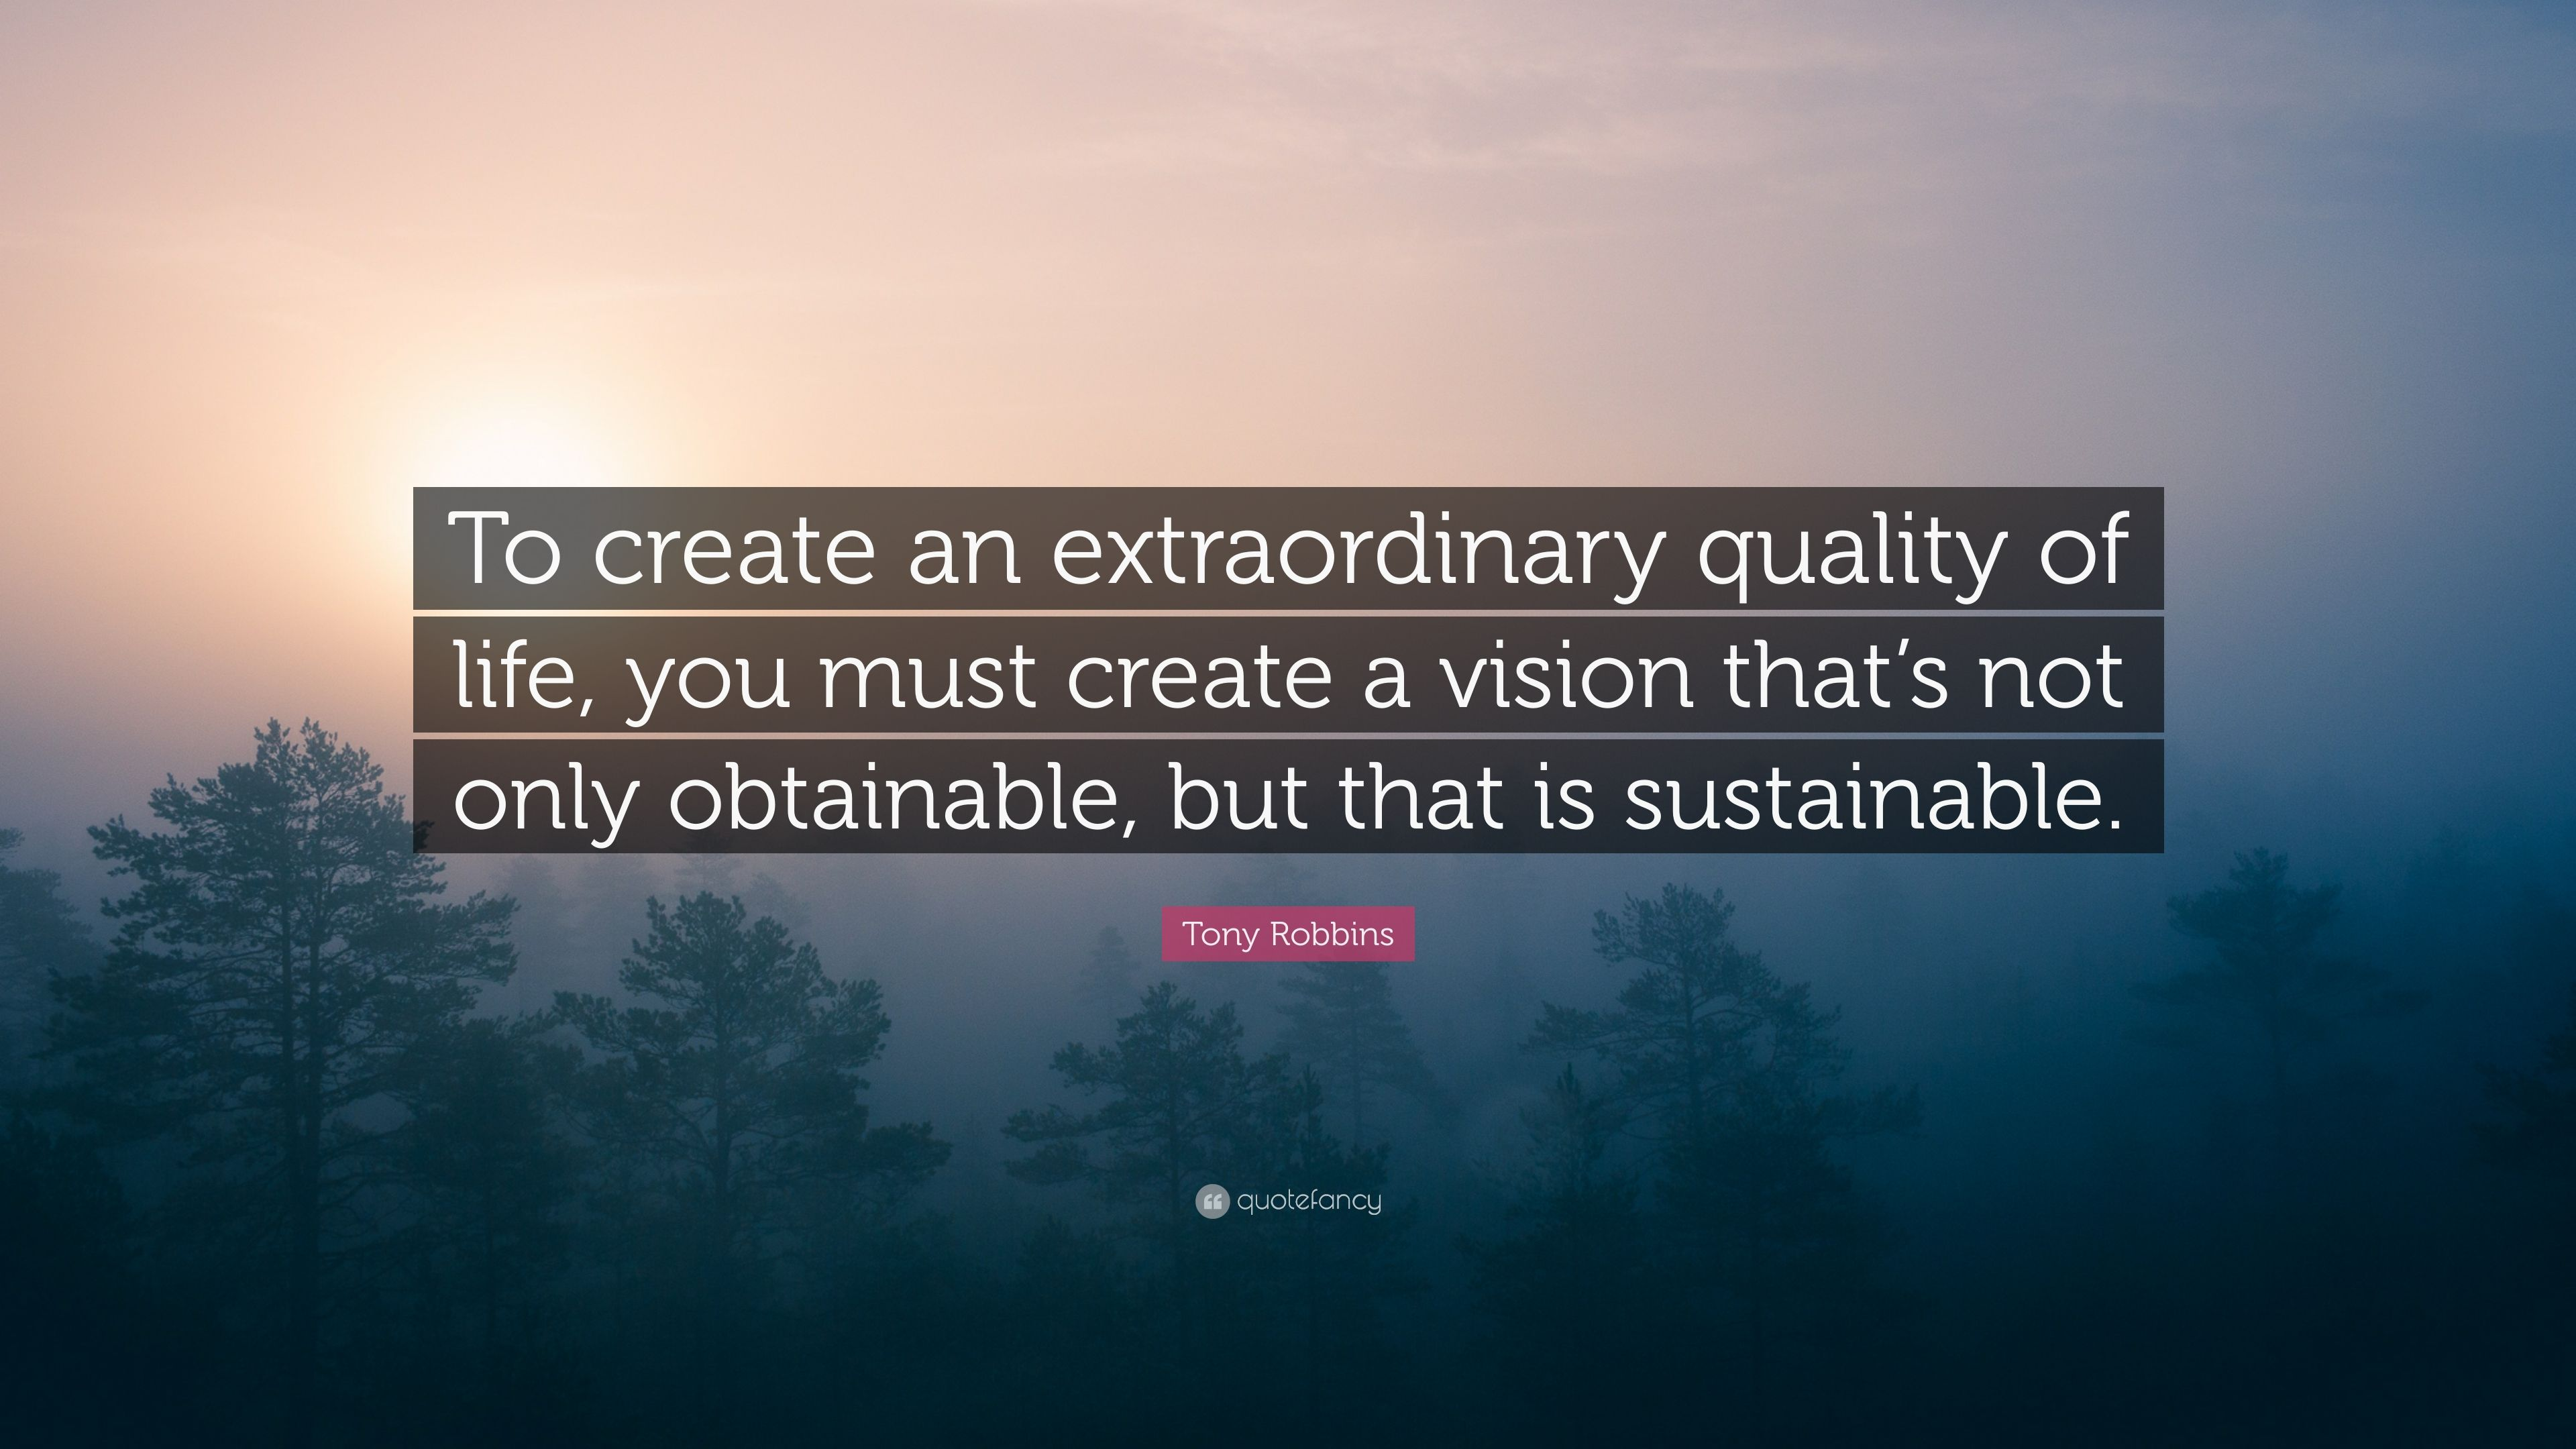 How to Create an Extraordinary Quality of Life